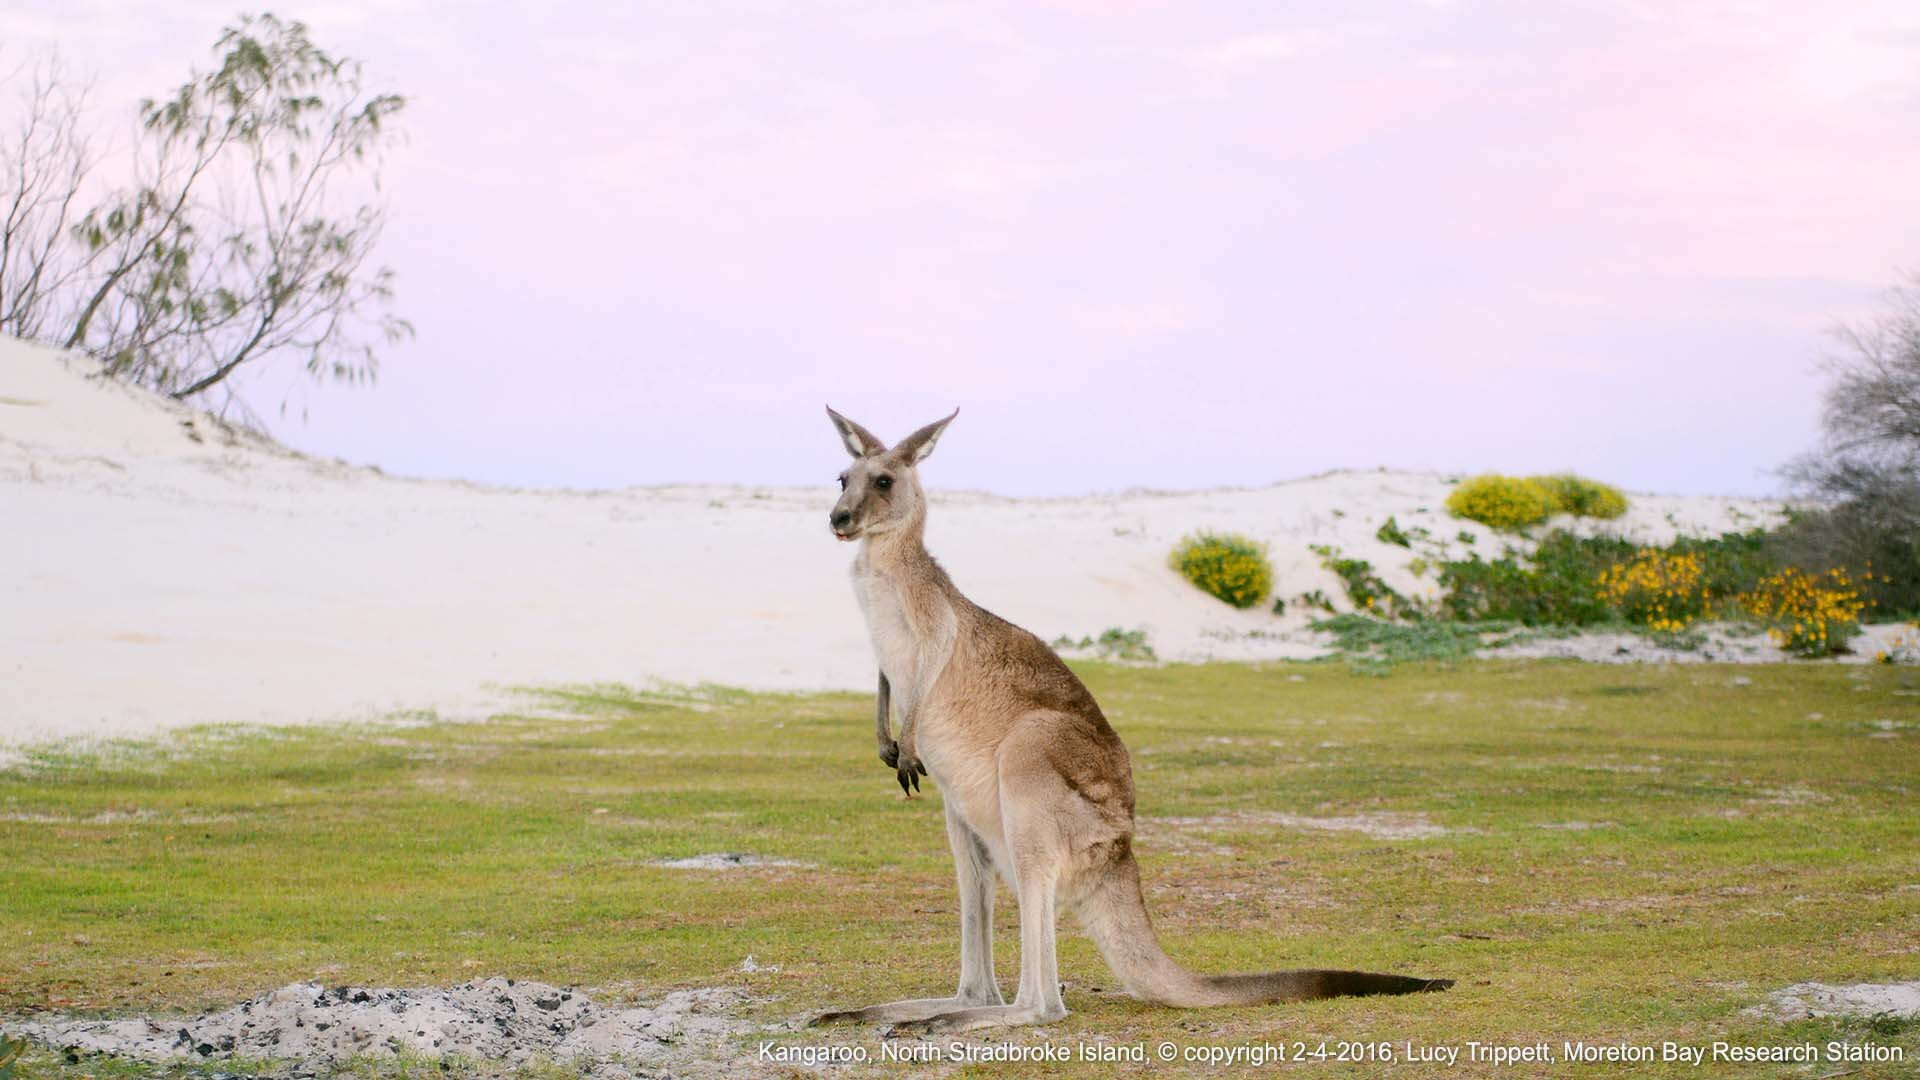 Kangaroo, North Stradbroke Island, © copyright 2-4-2016, Lucy Trippett, Moreton Bay Research Station